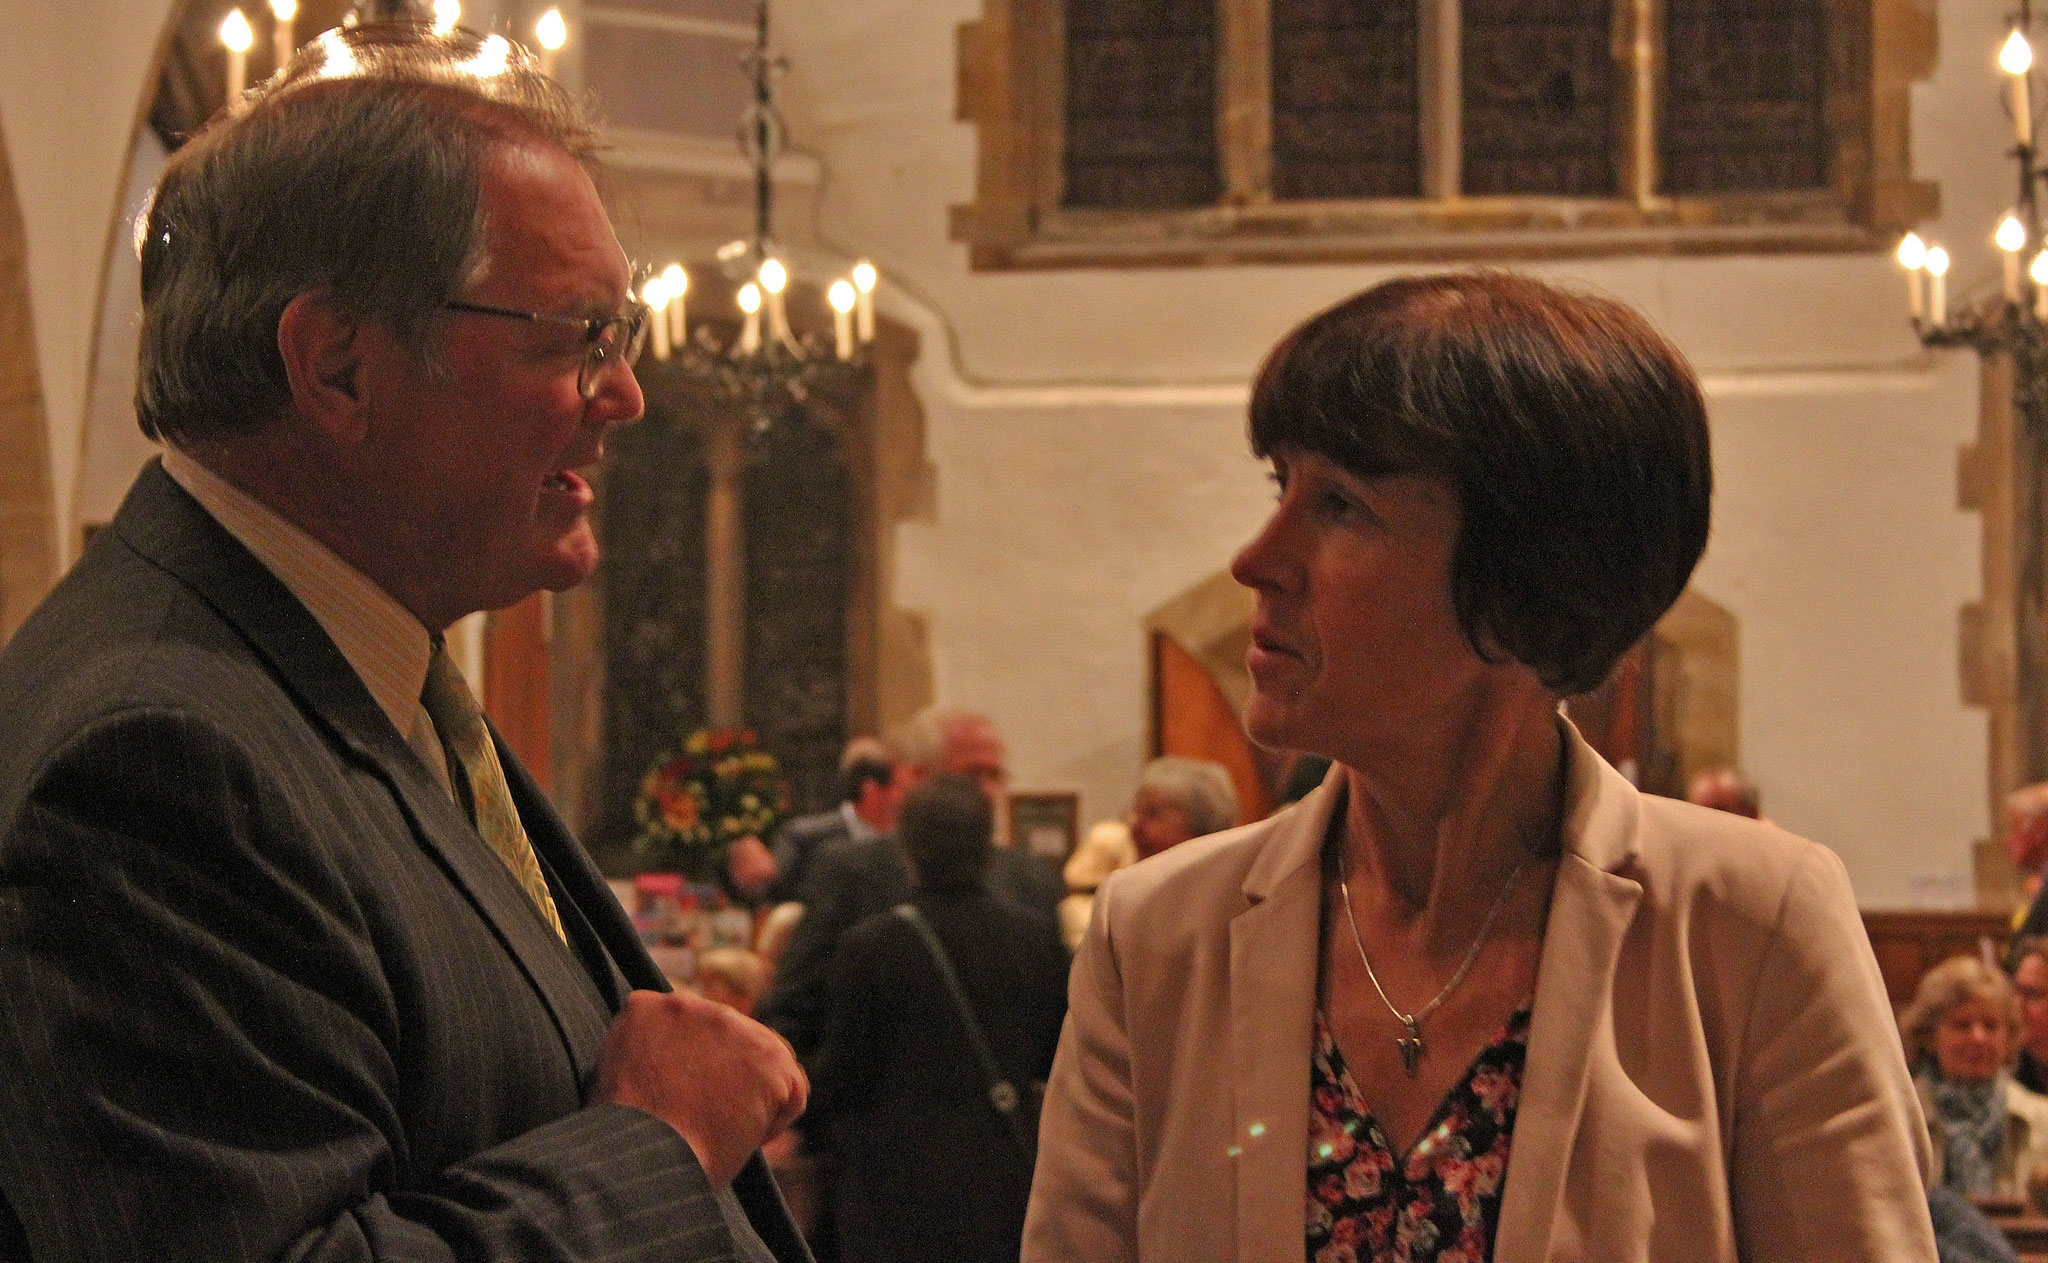 Patron J Lucas and Head of the School, Jill Costello